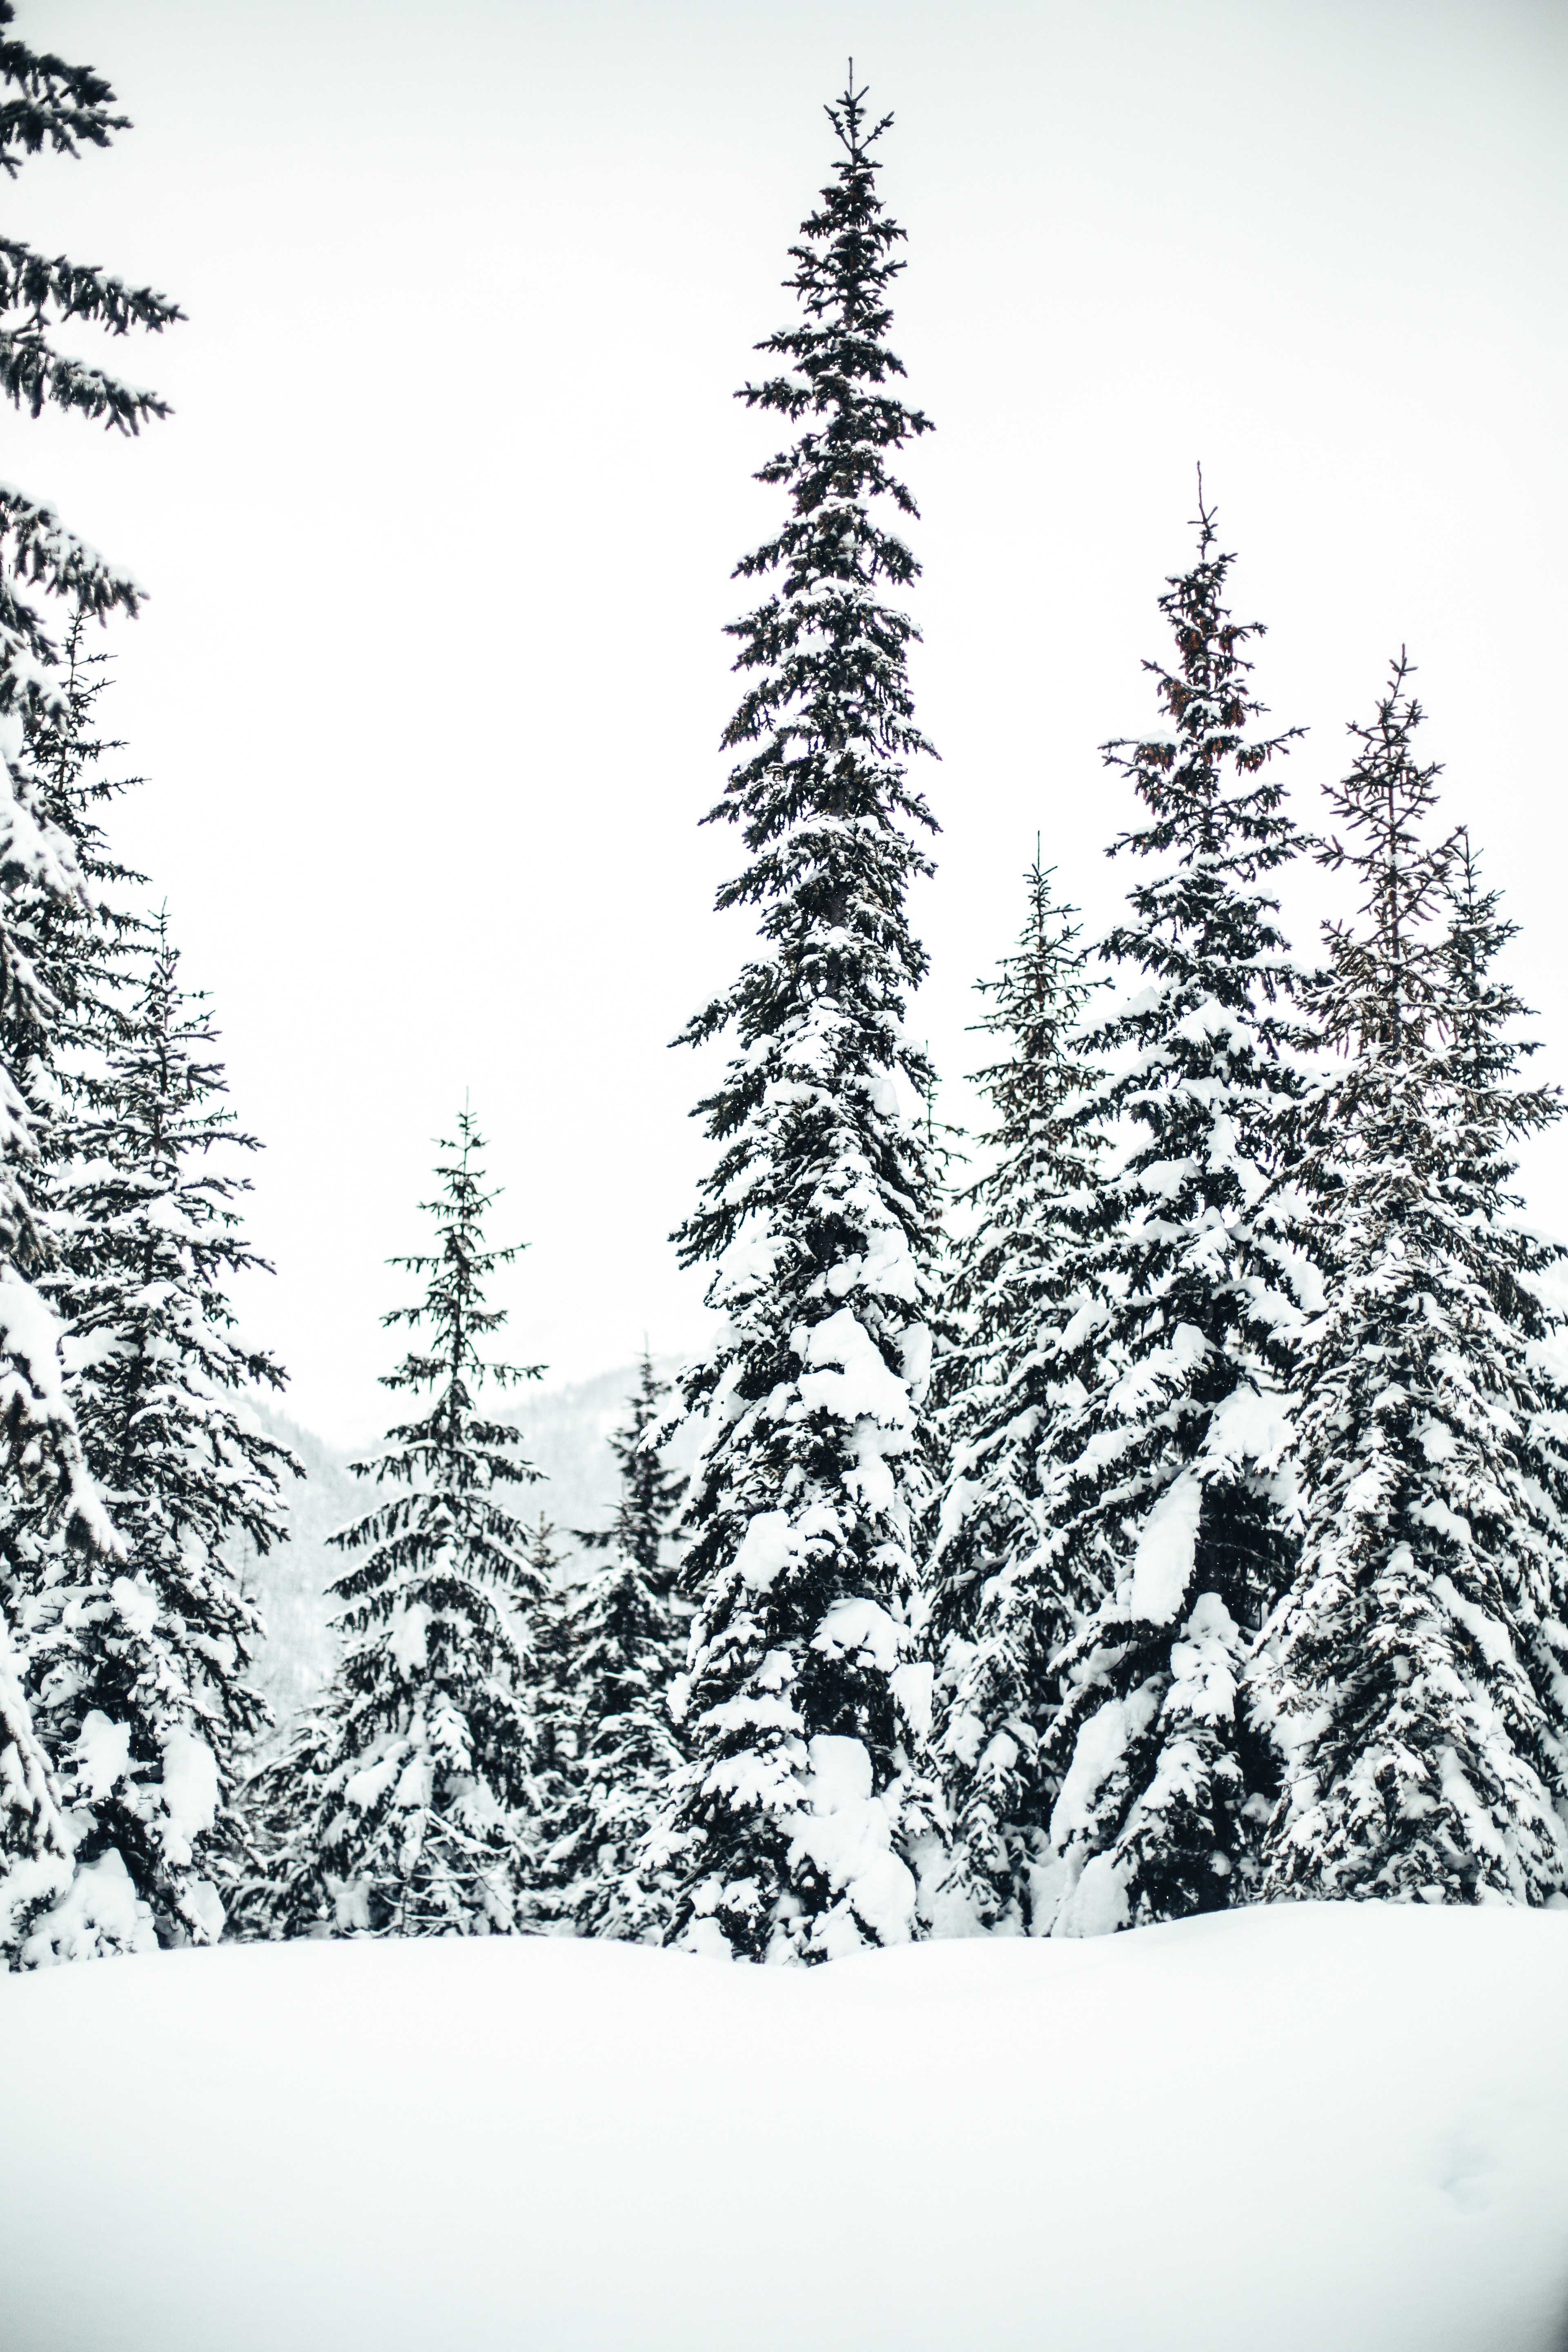 Snow-covered trees in British Columbia's backcountry.